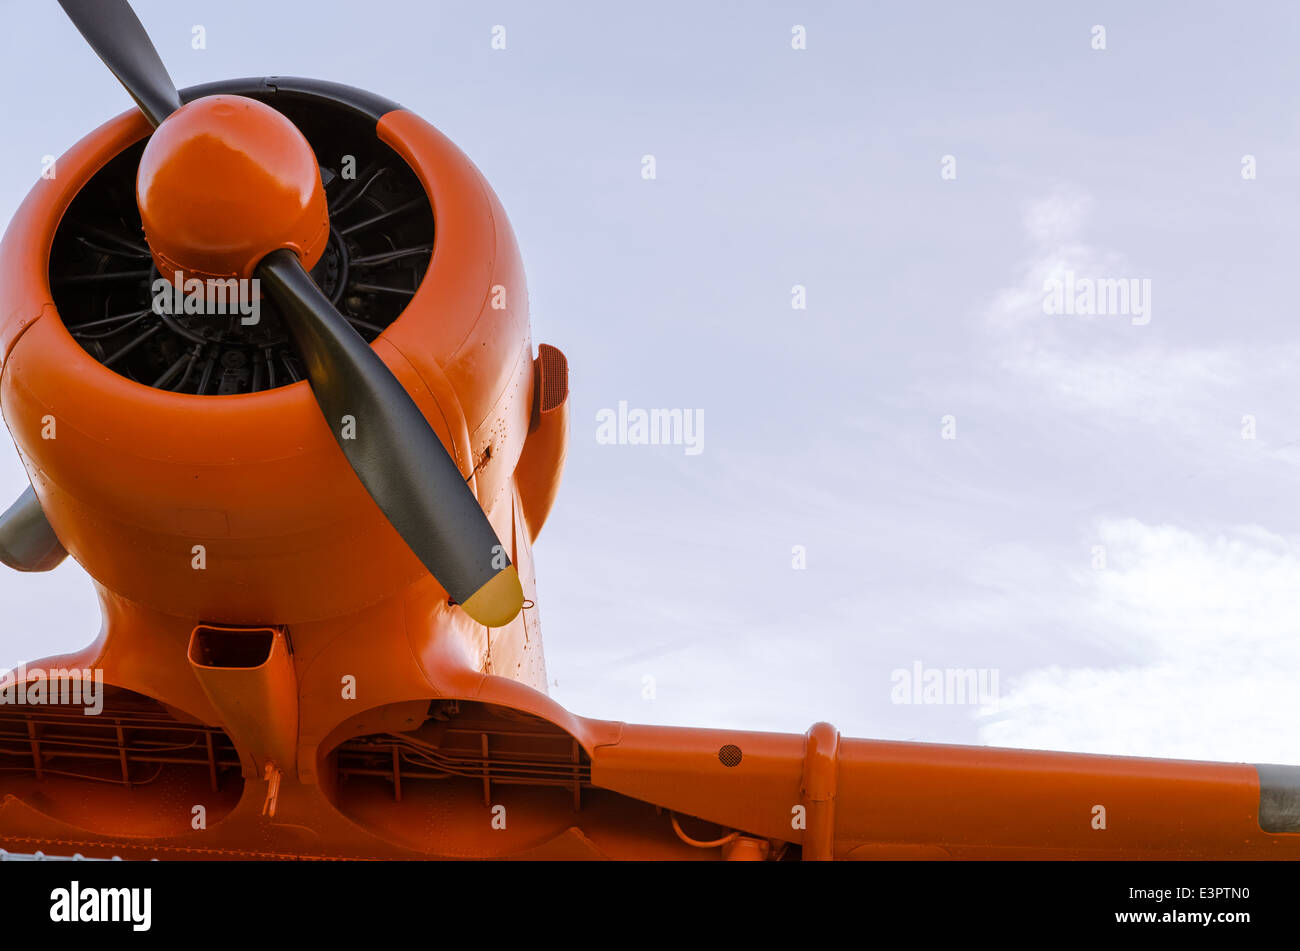 Adventure in the sky, Old airplane, orange, North American T-6G Texan - Stock Image